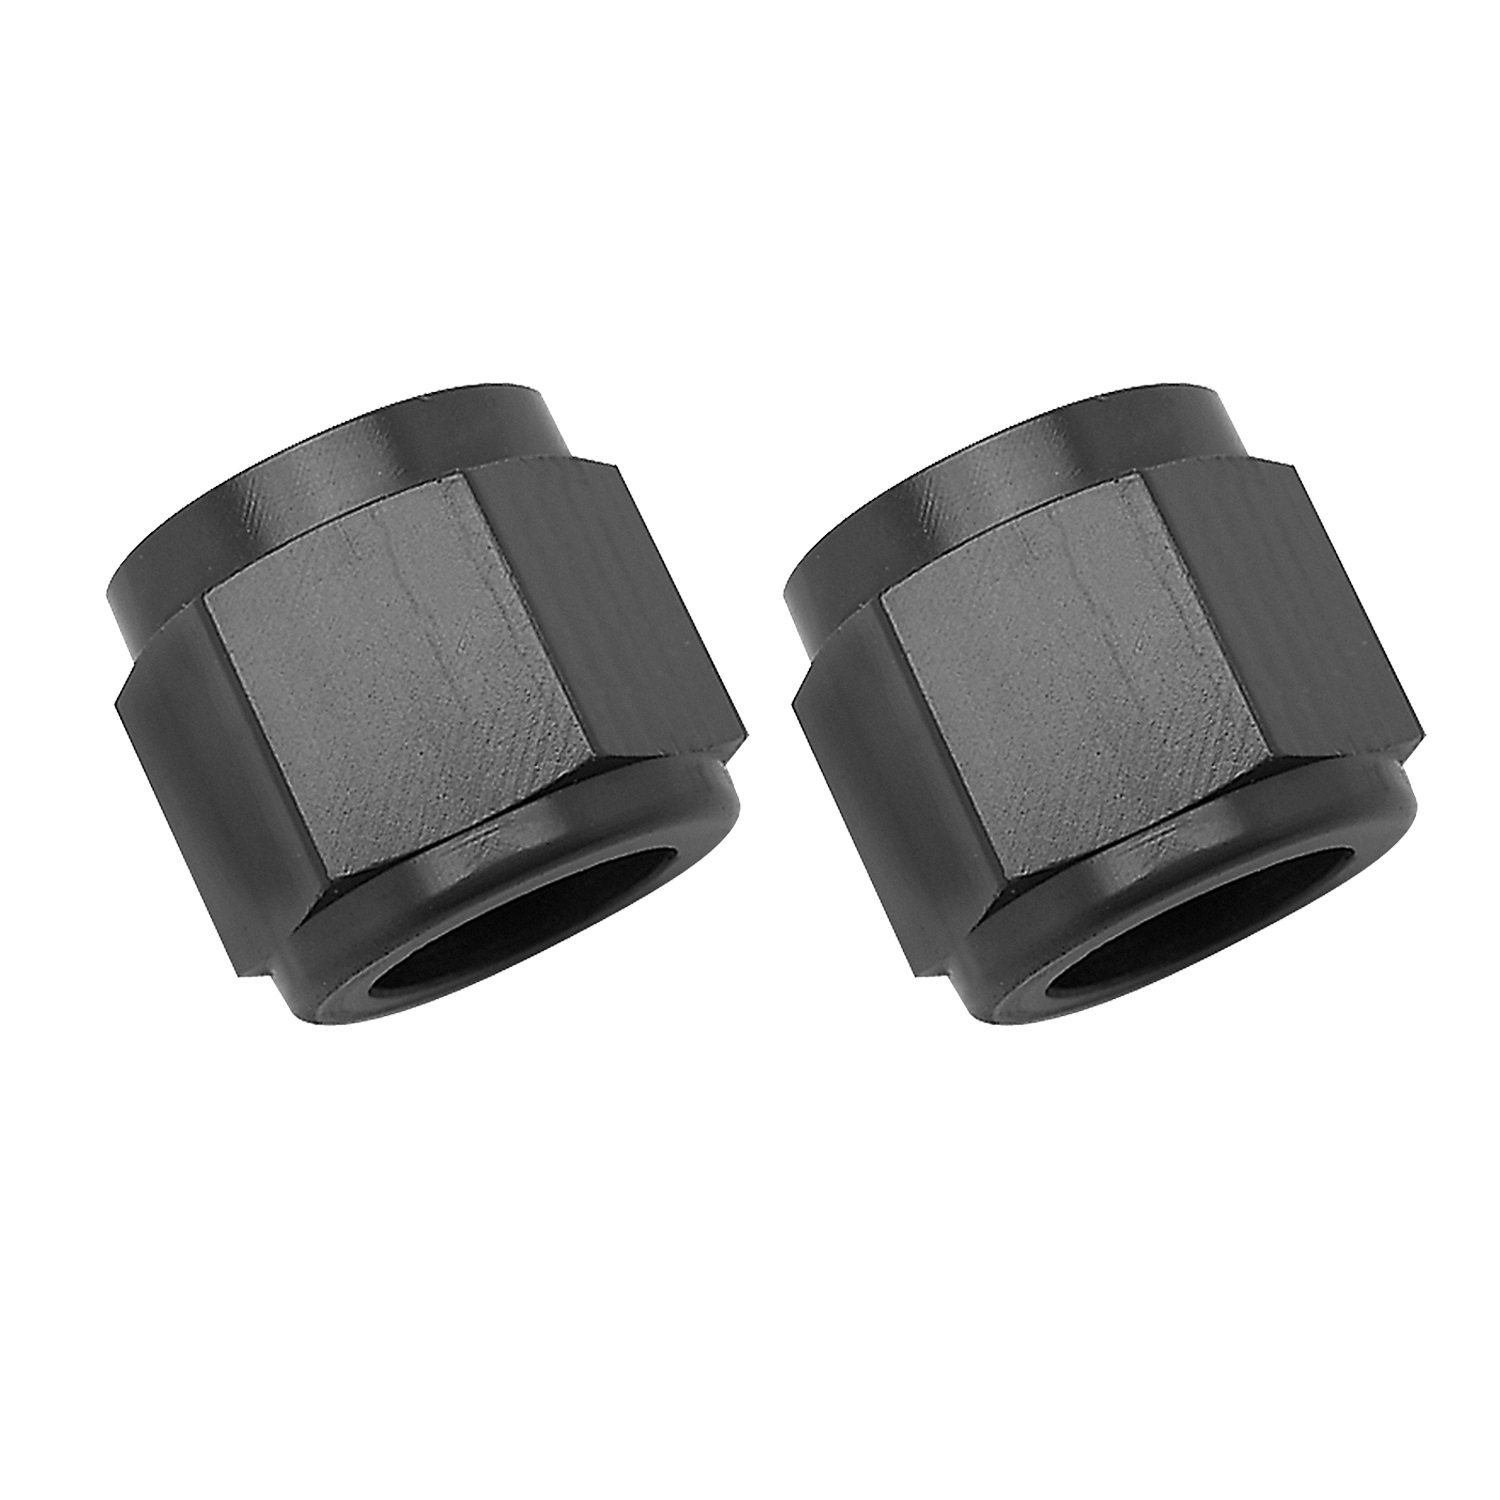 Russell 660575 Black -6 AN Tube Nut